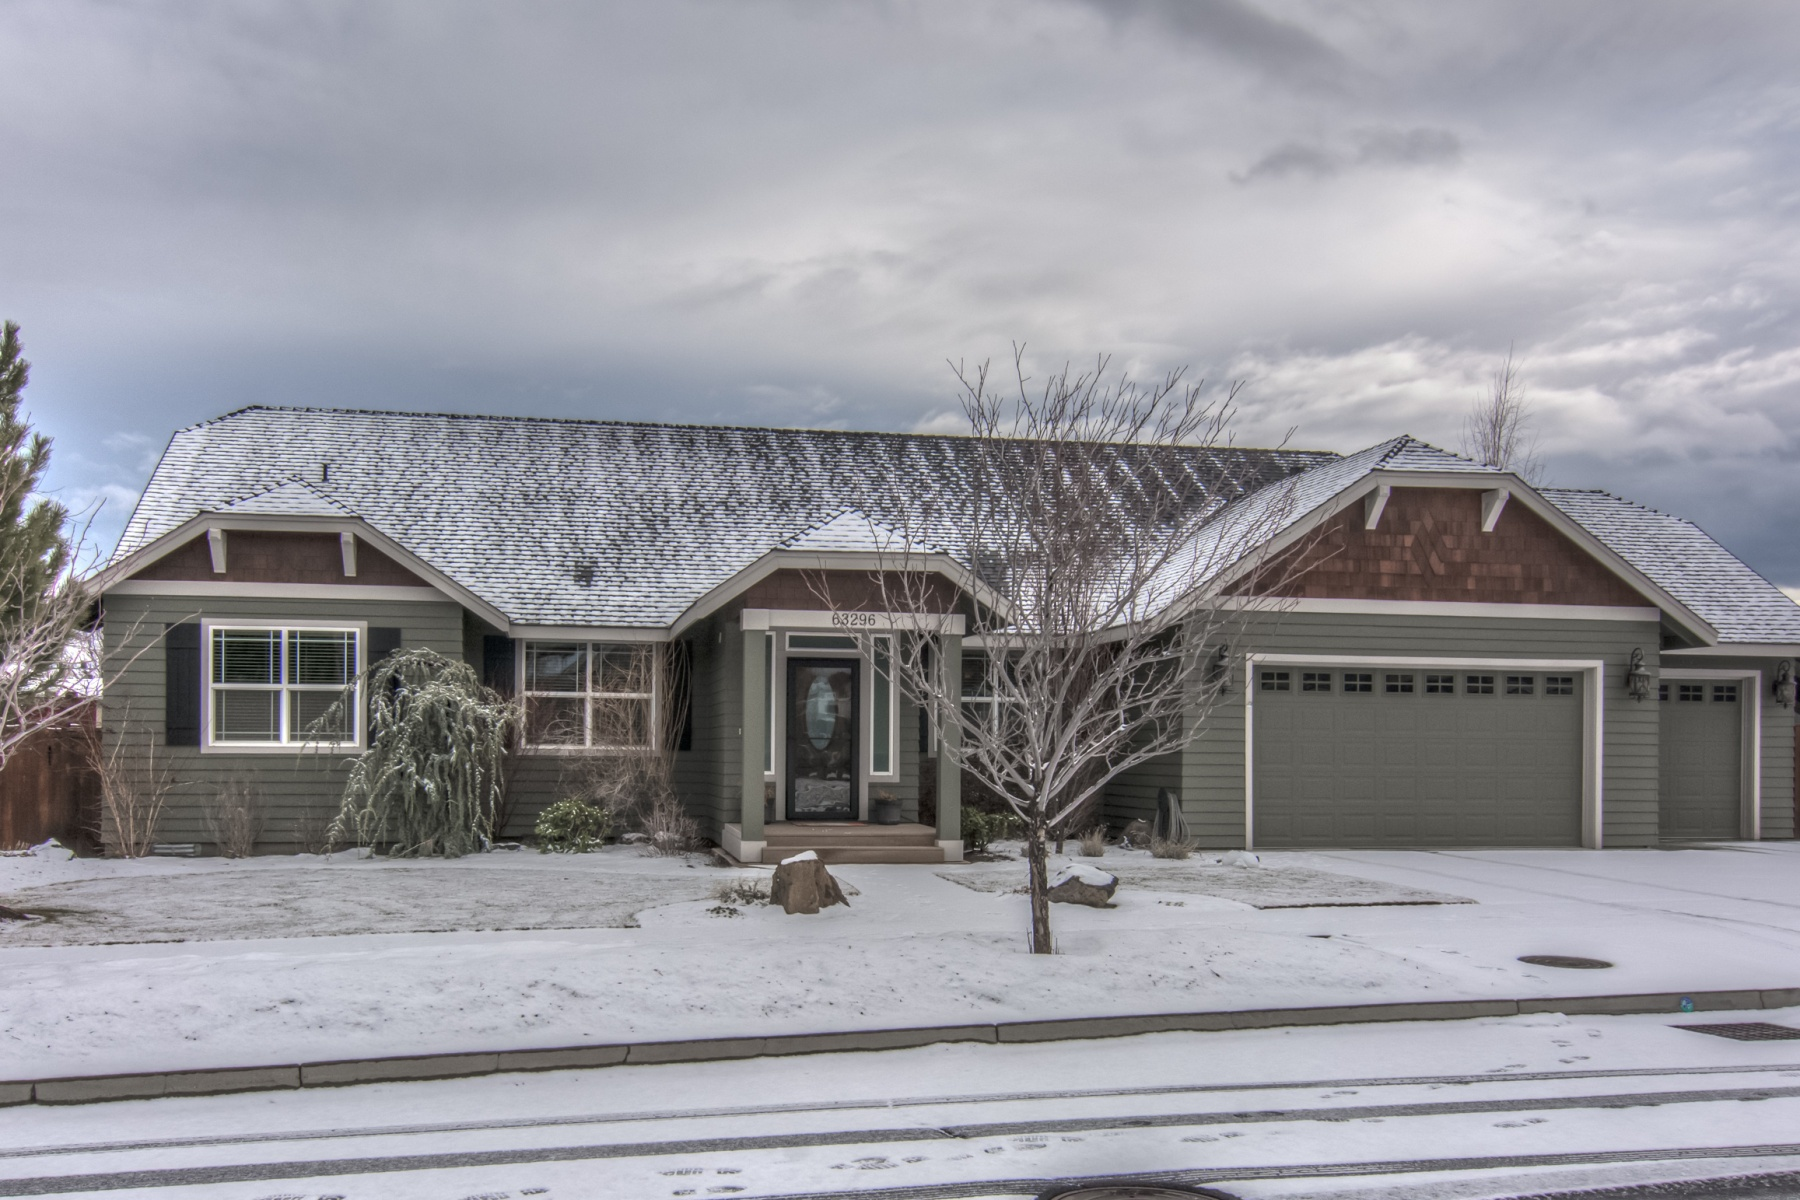 Single Family Home for Sale at Single Level with RV Parking 63296 Stonewood Dr Bend, Oregon 97701 United States